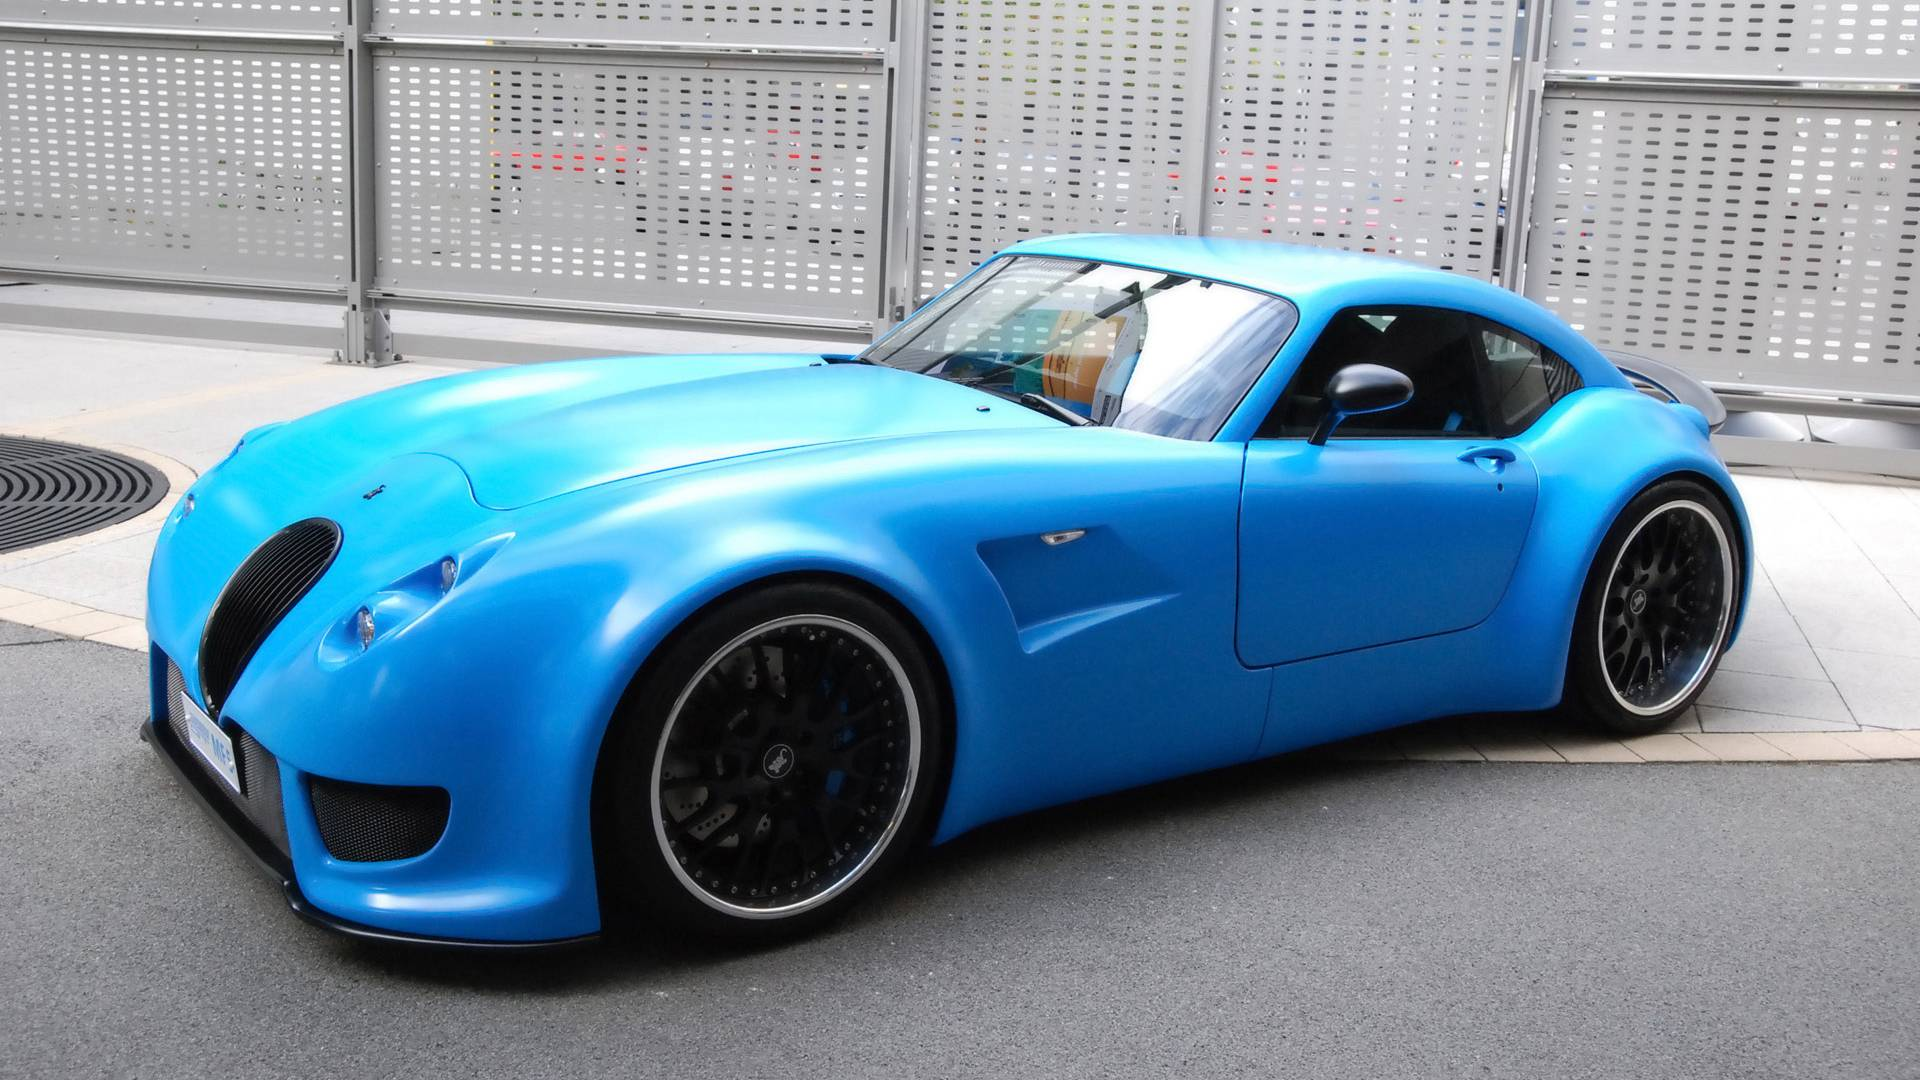 blue style   Cars Wallpaper 1920x1080